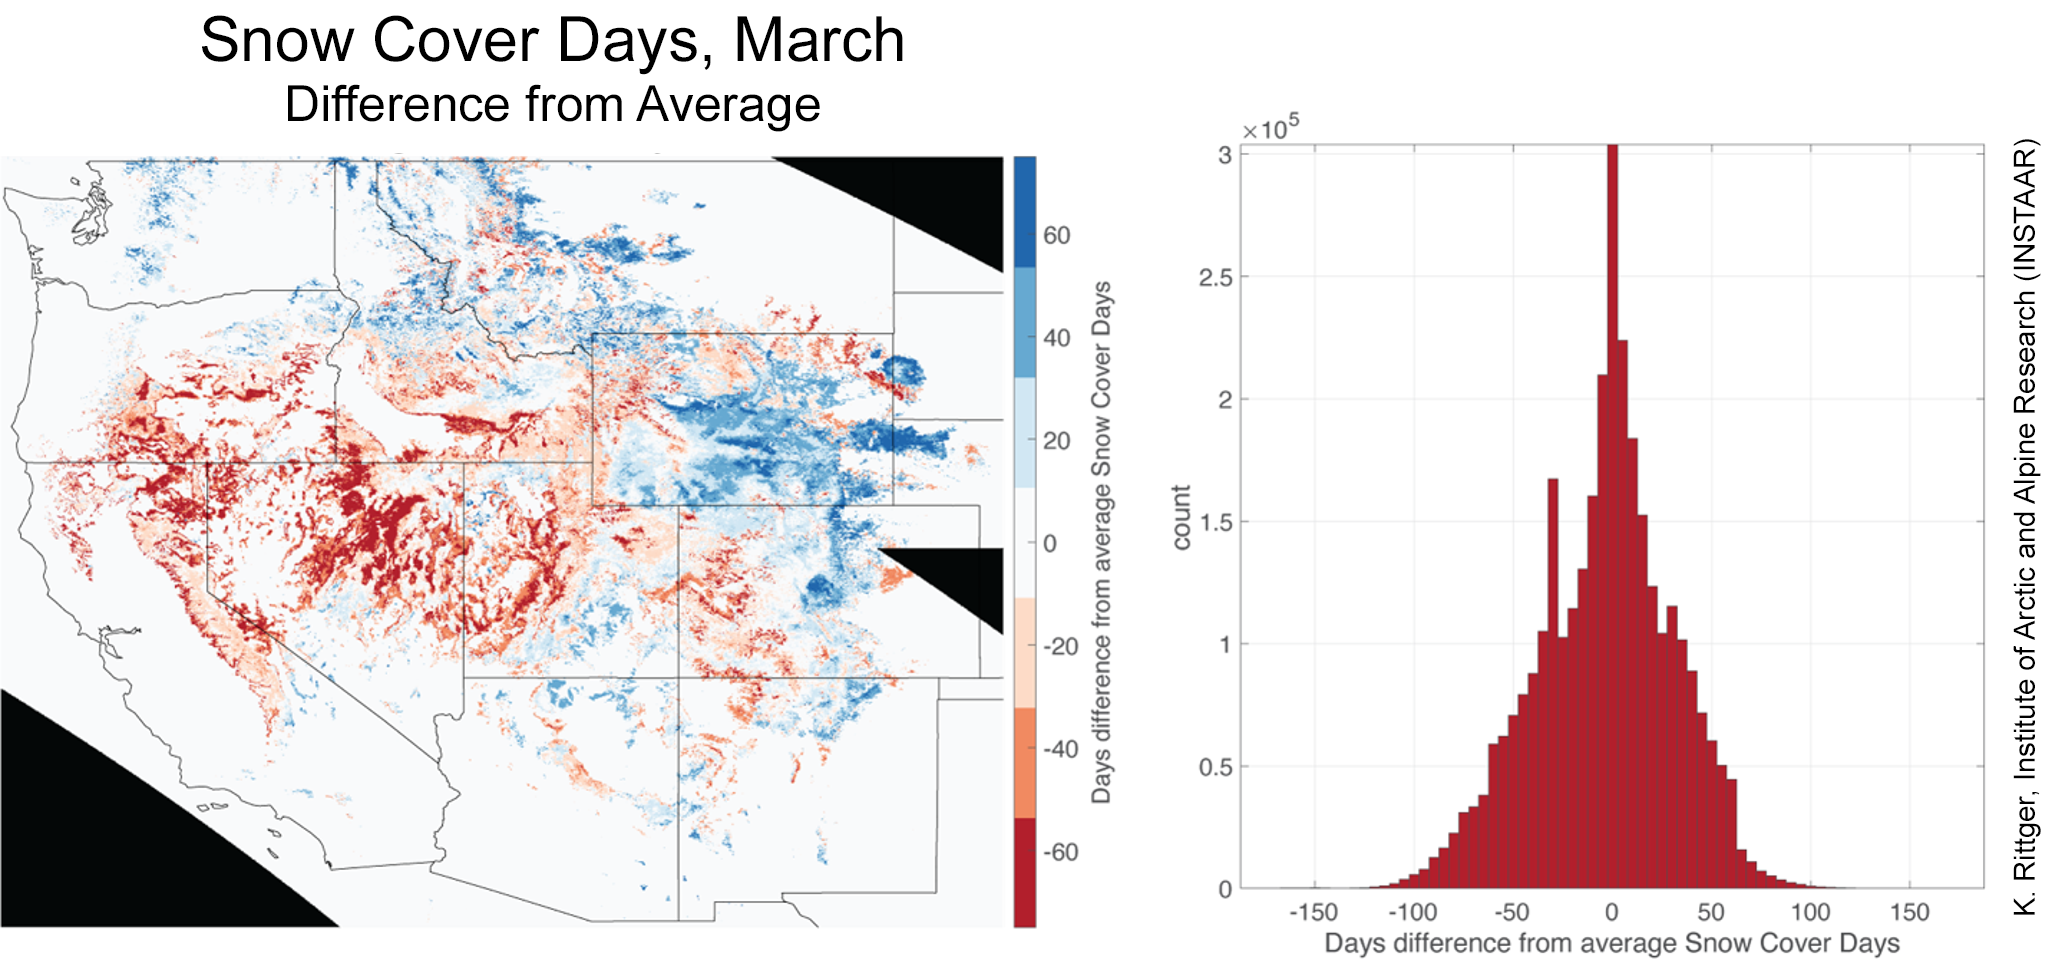 Snow Cover Days, March as difference from average